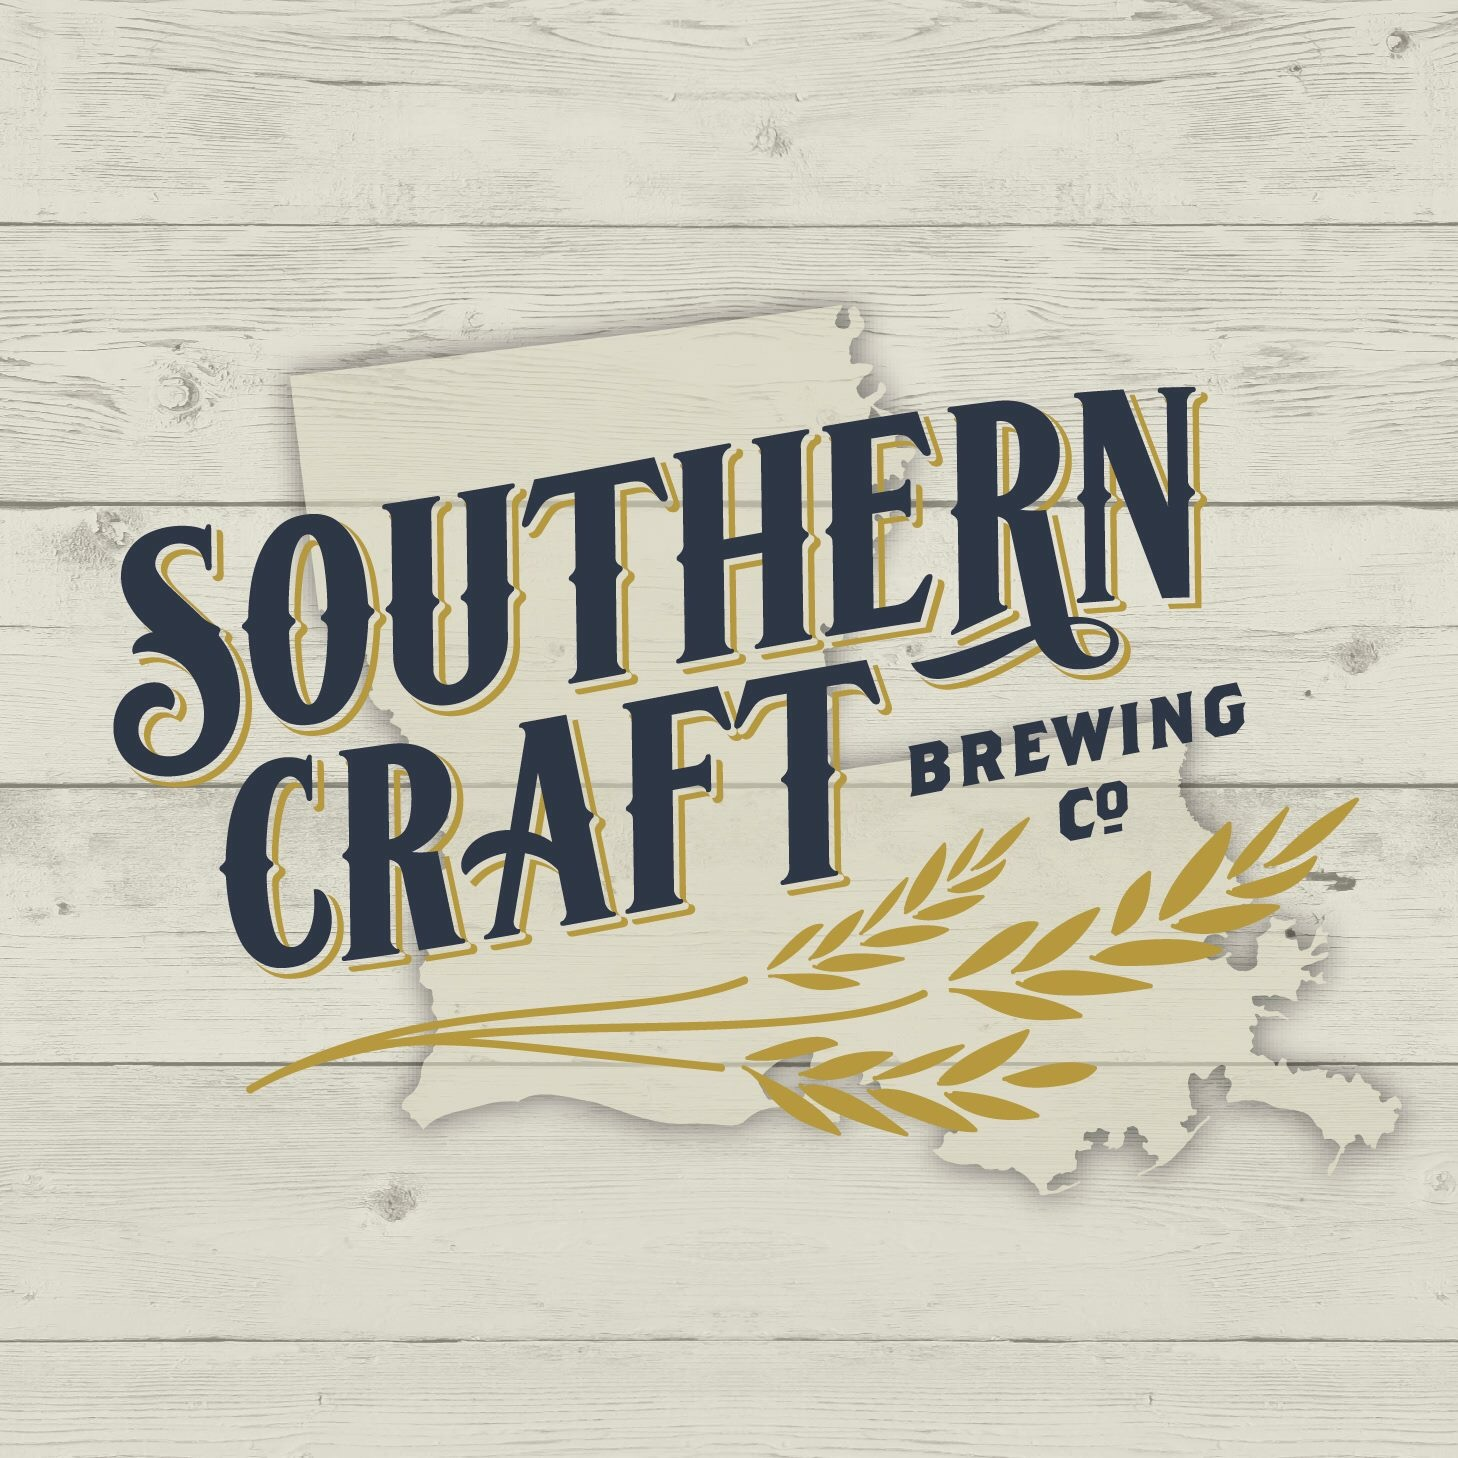 Copy of Southern Craft Brewing Company